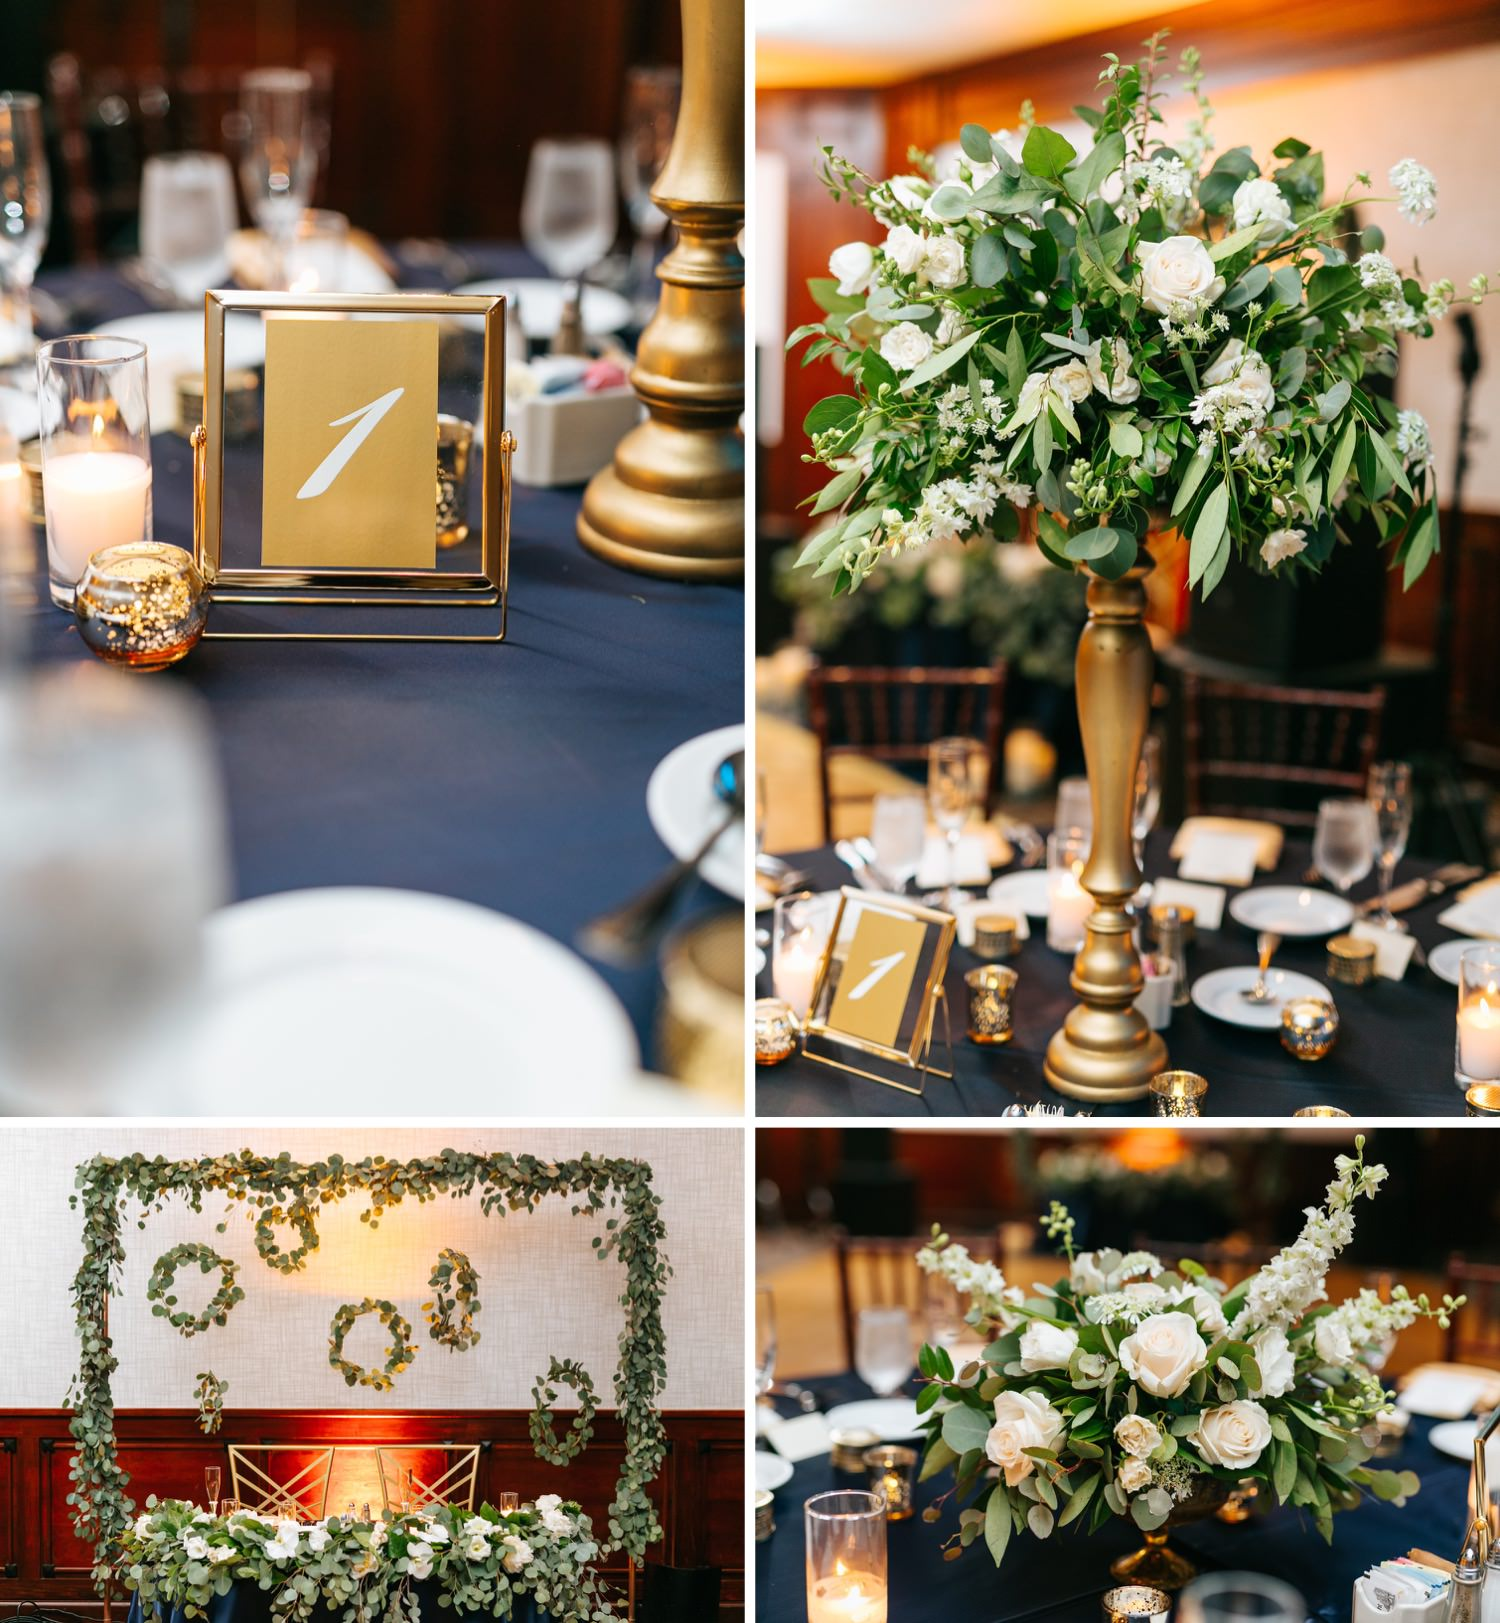 Los Angeles Wedding - Reception Details and Decor - https://brittneyhannonphotography.com